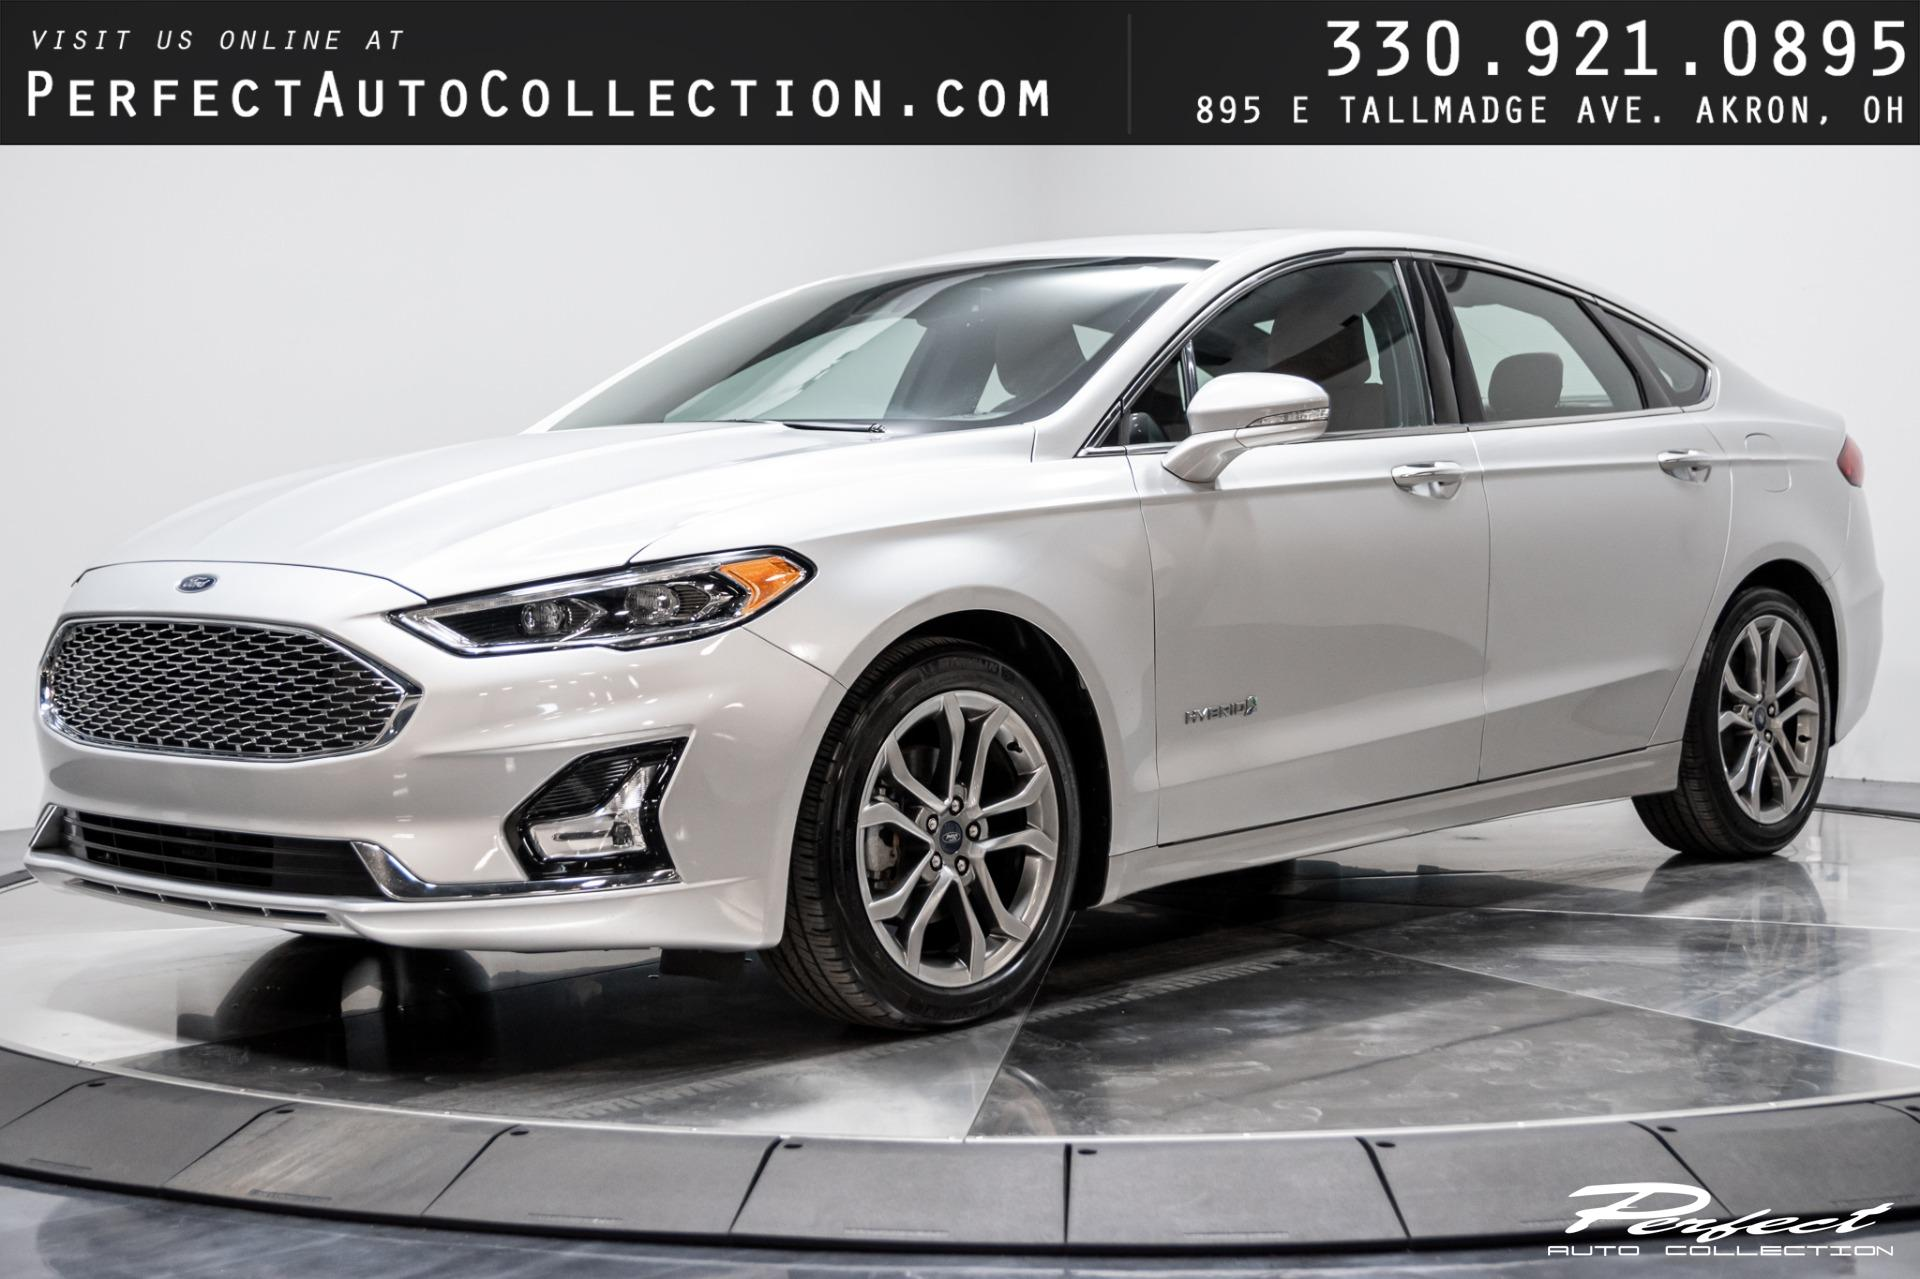 Used 2019 Ford Fusion Hybrid Titanium for sale $18,493 at Perfect Auto Collection in Akron OH 44310 1